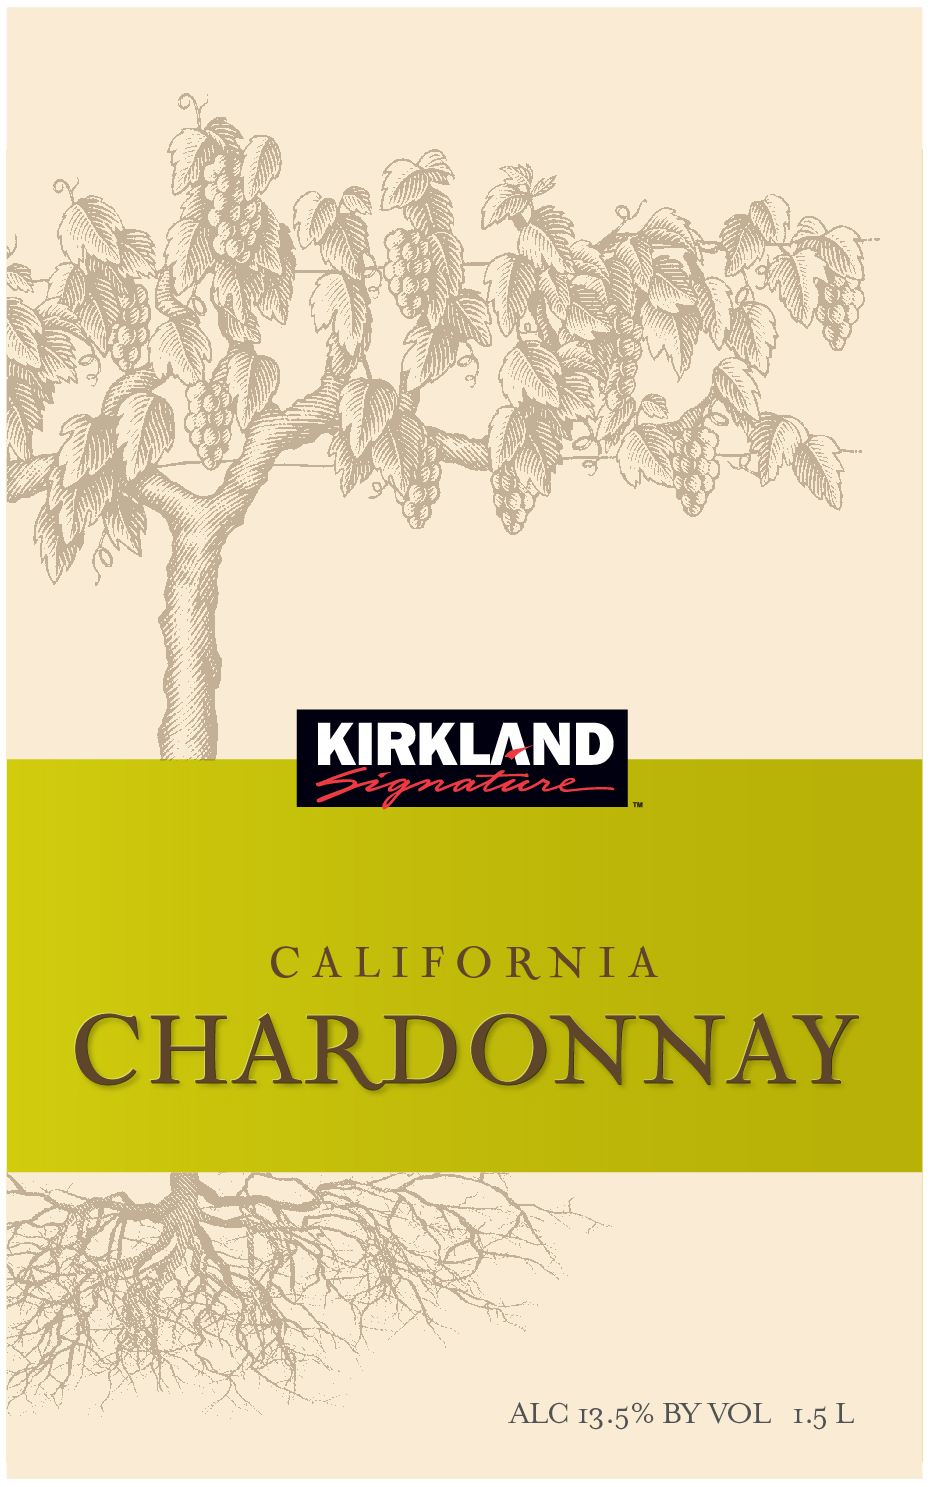 Kirkland Signature California Chardonnay is a classic Chardonnay with vibrant, tropical flavors of pineapple and mango surrounded by fresh notes of peach, brisk green apple and sweet citrus which is polished to a finish with hints of oak, honey and butterscotch.